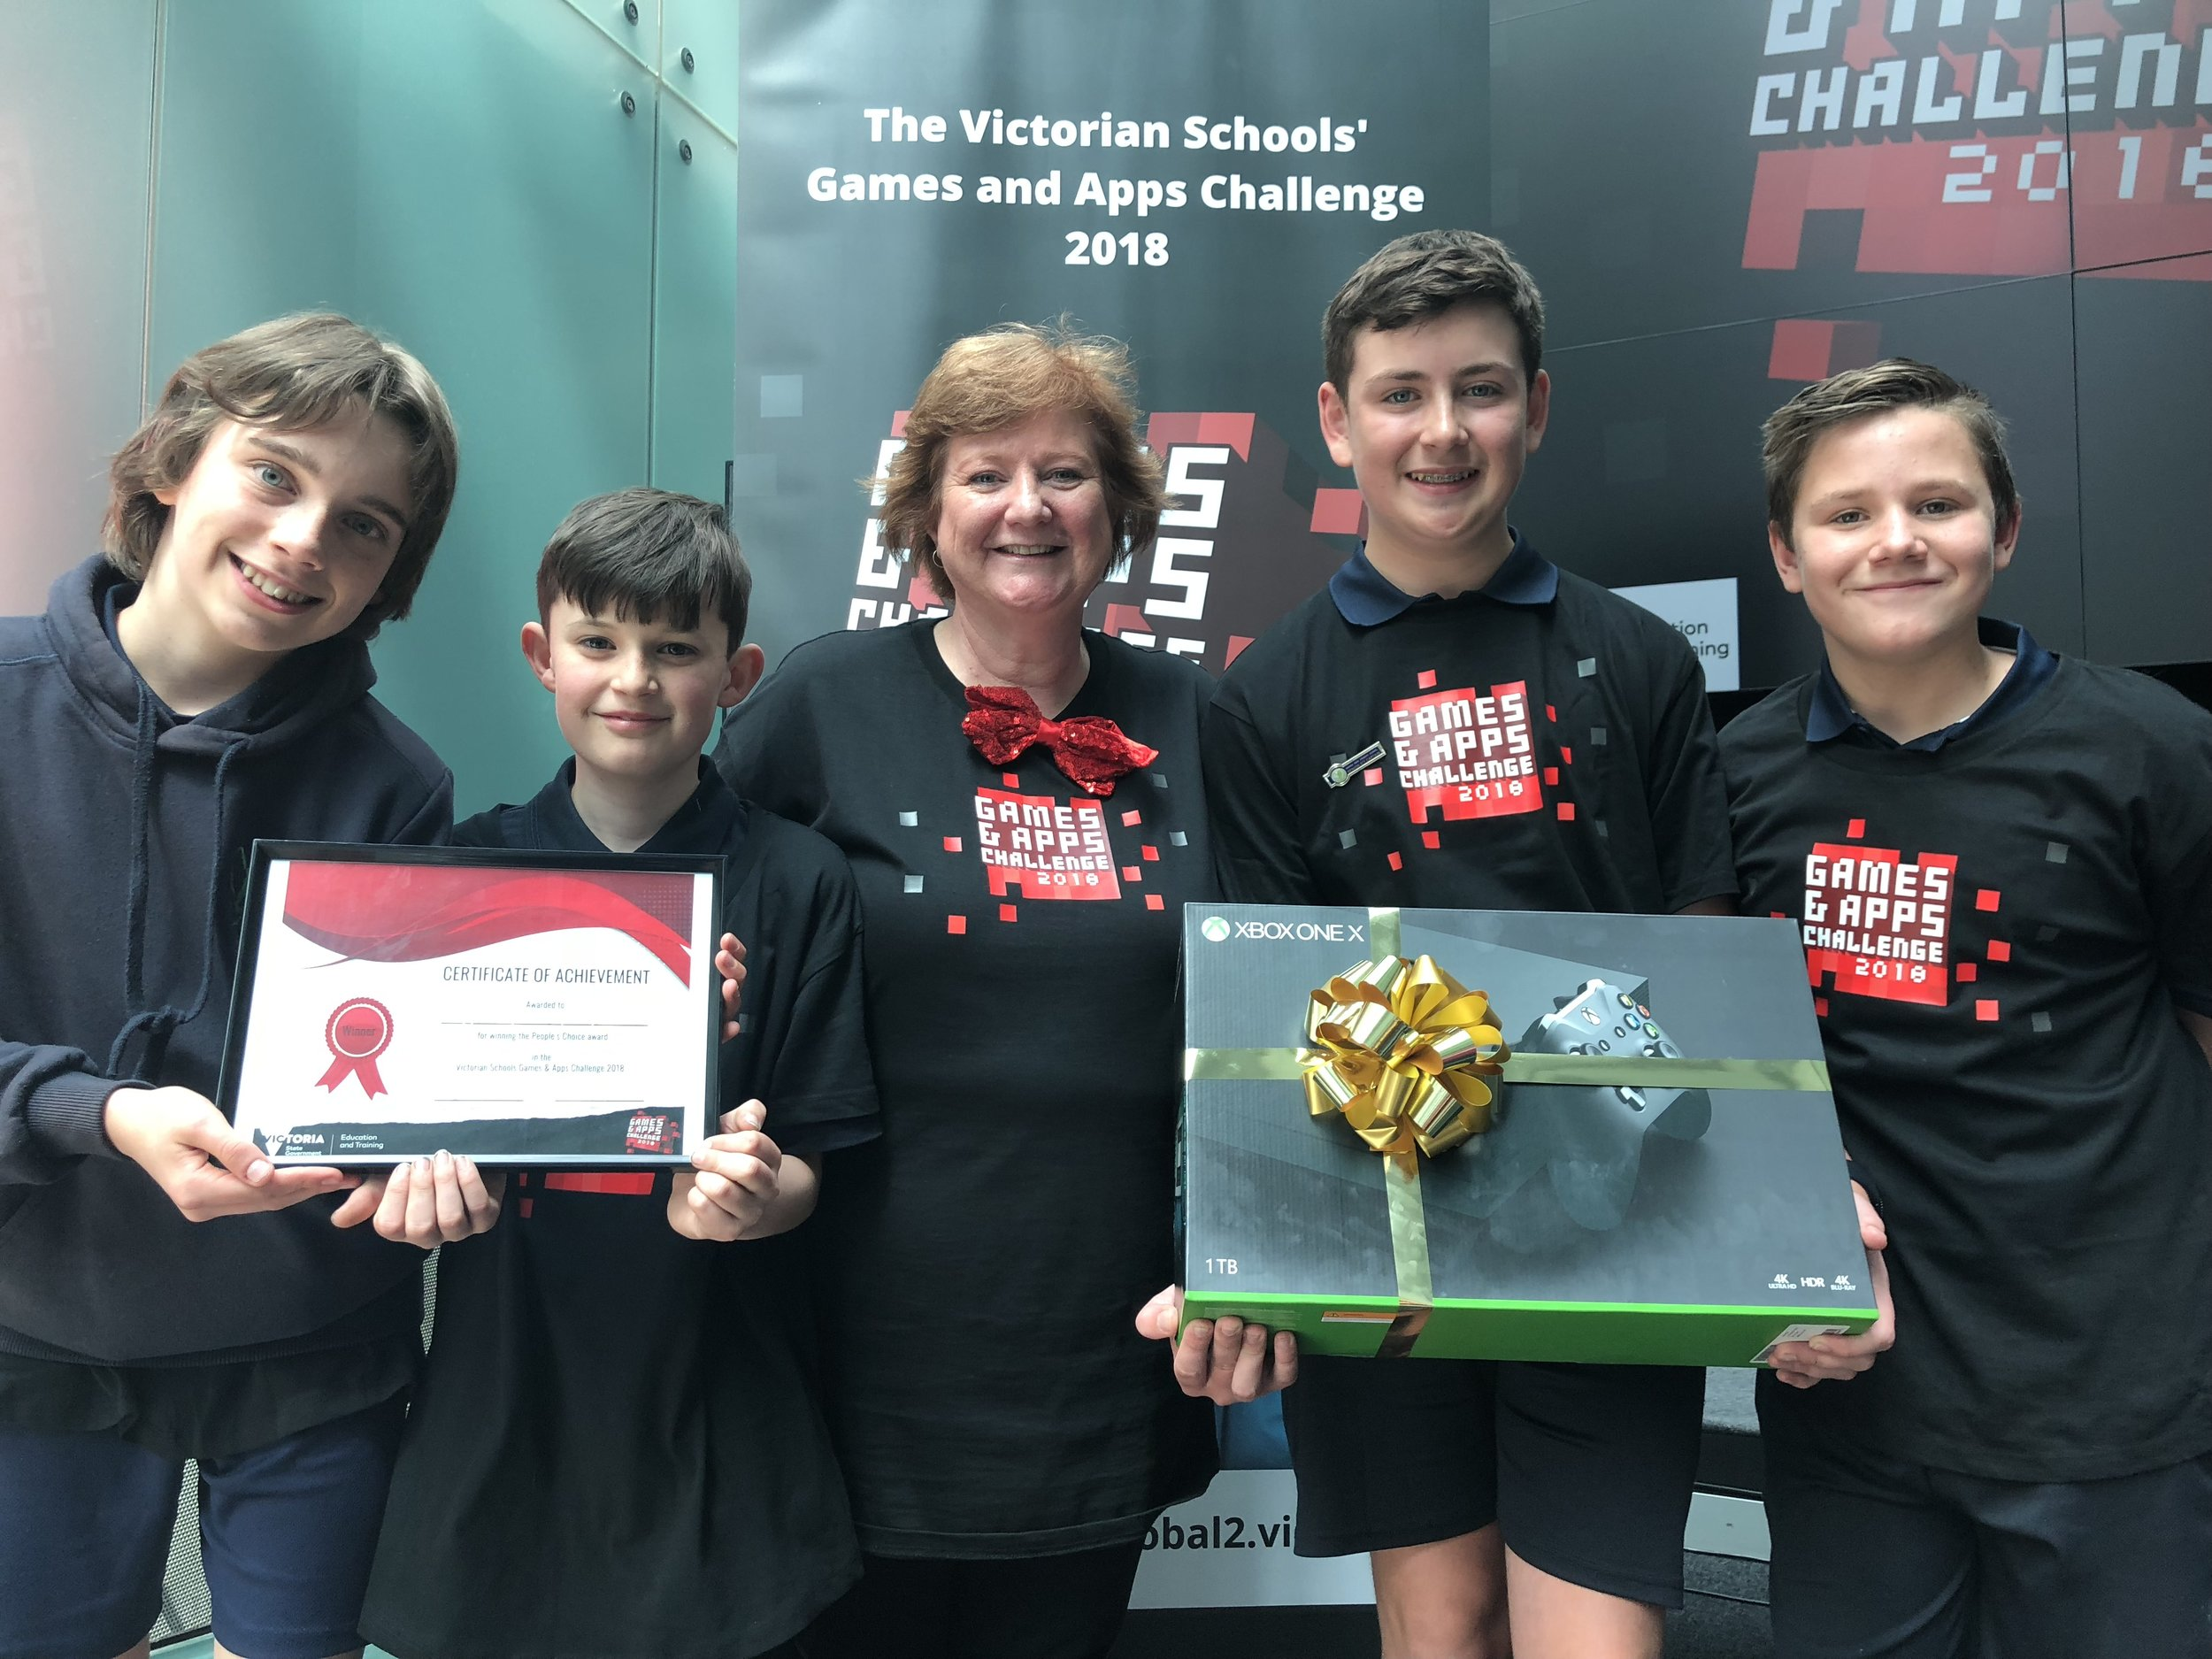 Winners of the 2018 Games and App Challenge